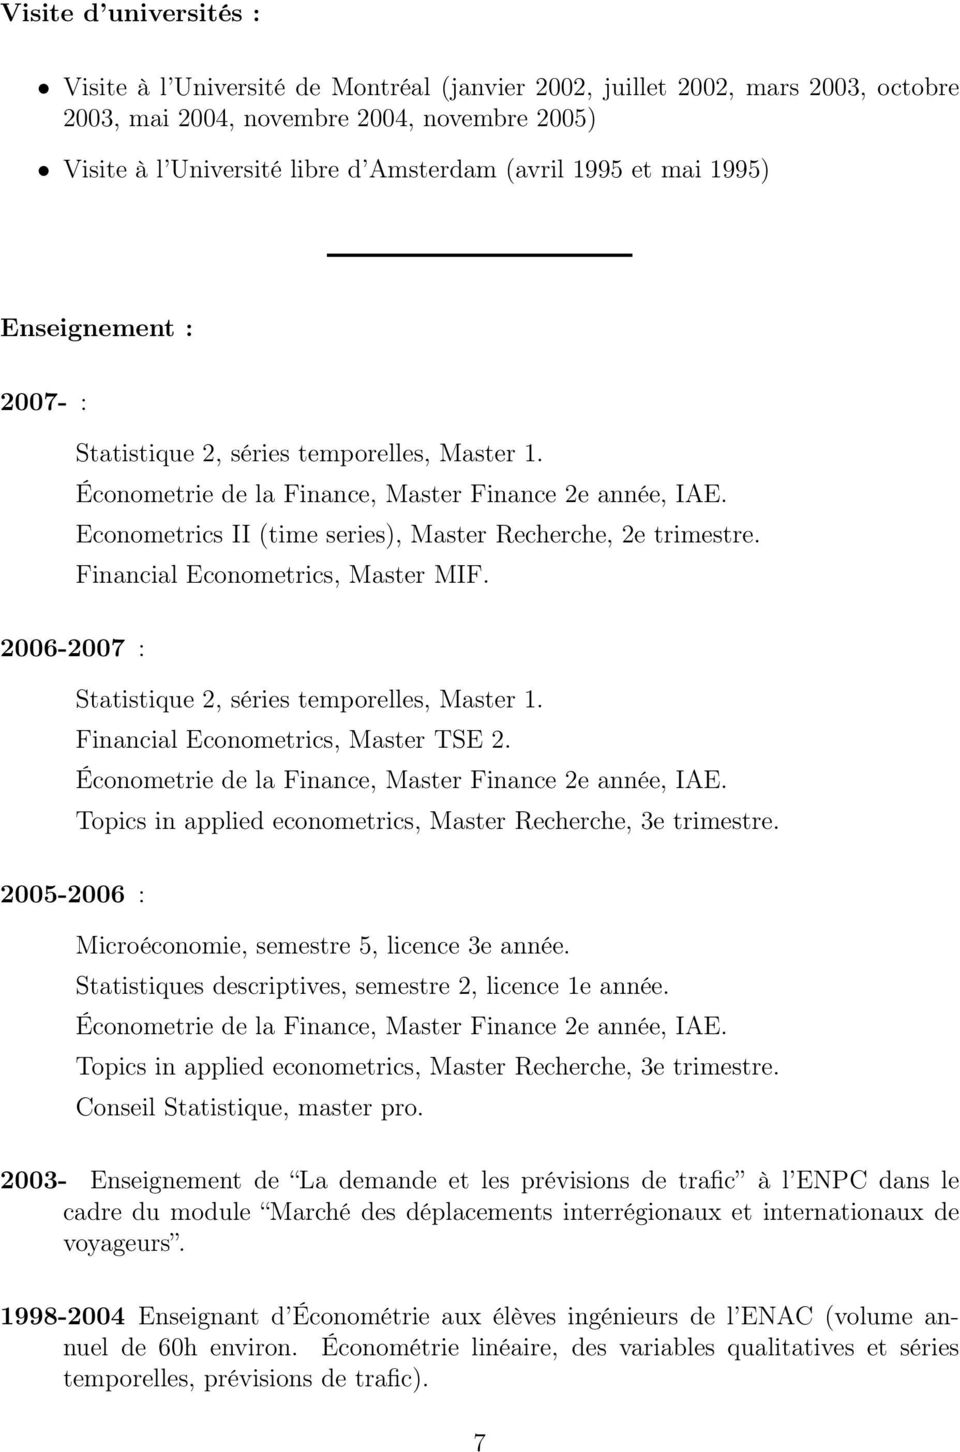 Econometrics II (time series), Master Recherche, 2e trimestre. Financial Econometrics, Master MIF. 2006-2007 : Statistique 2, séries temporelles, Master 1. Financial Econometrics, Master TSE 2.